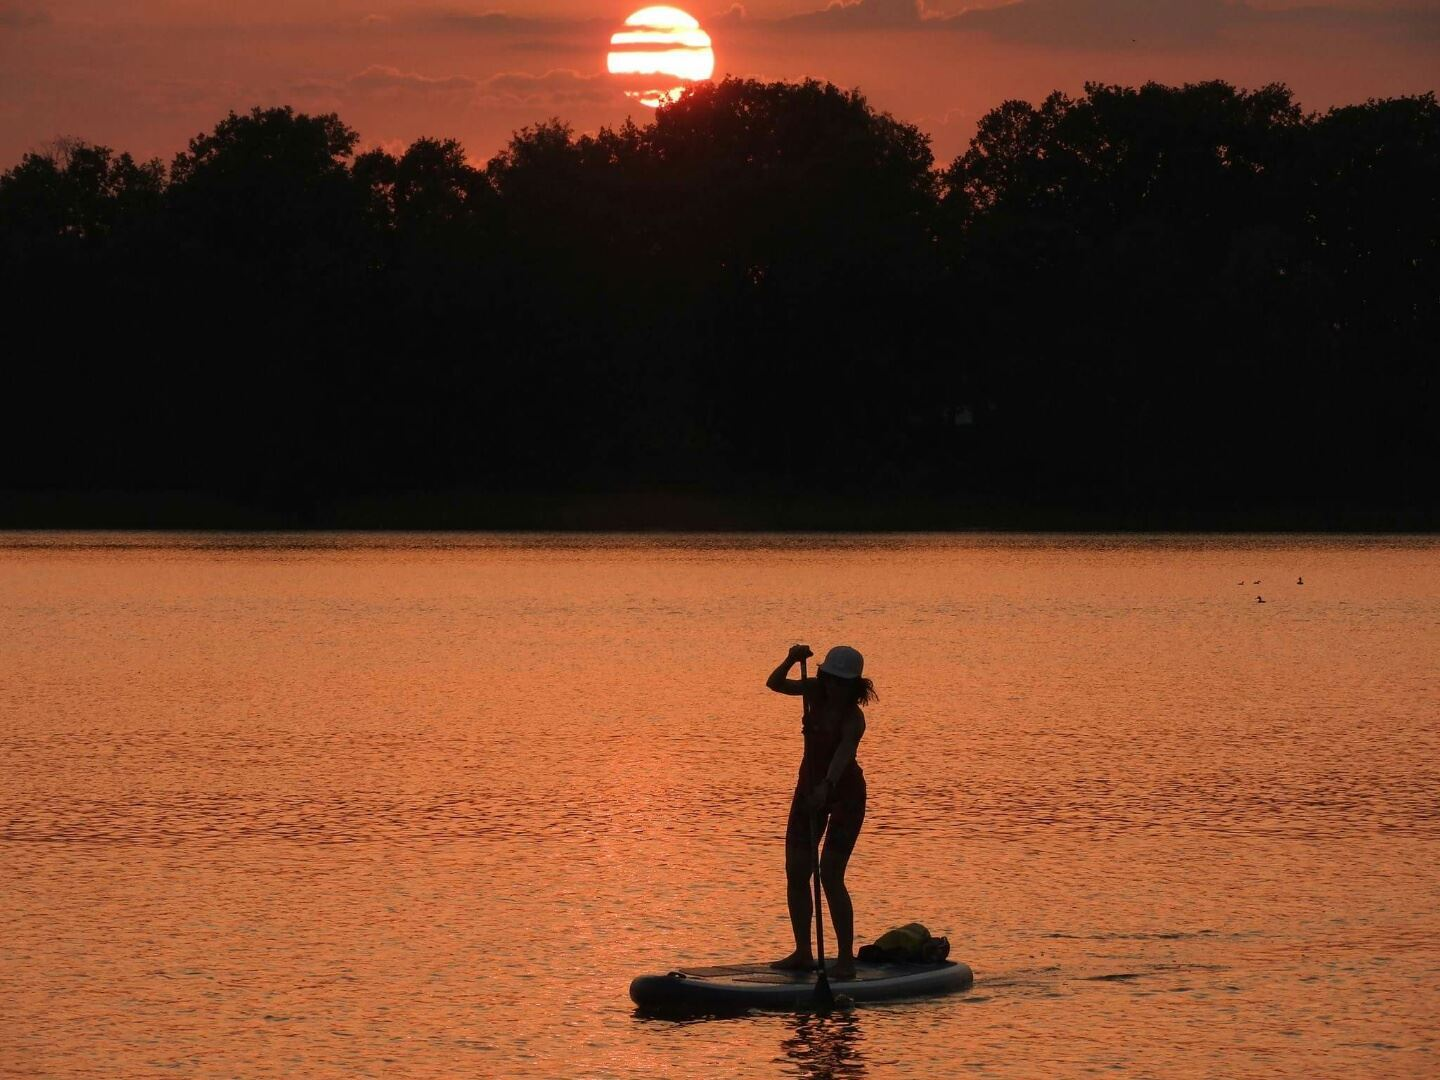 Stand Up Paddle - an exciting water activity